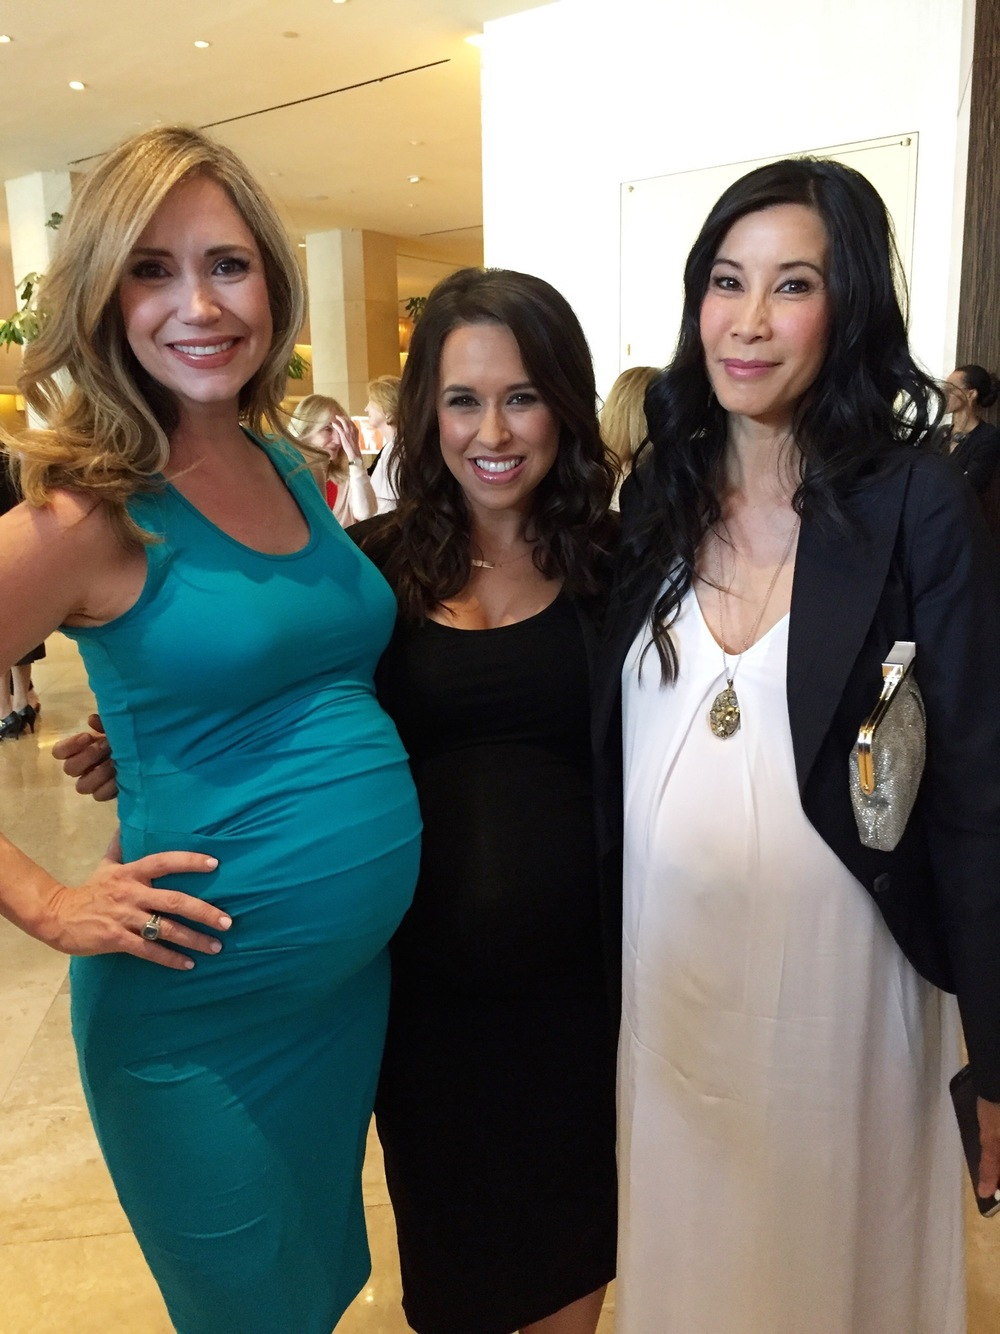 i stayed comfortable in   this tank dress   that i absolutely love (comes in many colors)- Pictured at step up women's inspiration awards with fellow pregnant ladies Lacey Chabert and Lisa Ling (due in two weeks!). I love Lisa's flowy white NON-maternity dress      from another awesome supporter and sponsor of this year's event,    MICHAEL STARS  -  take a look at some of their newer pieces. Great for maternity and non-maternity.